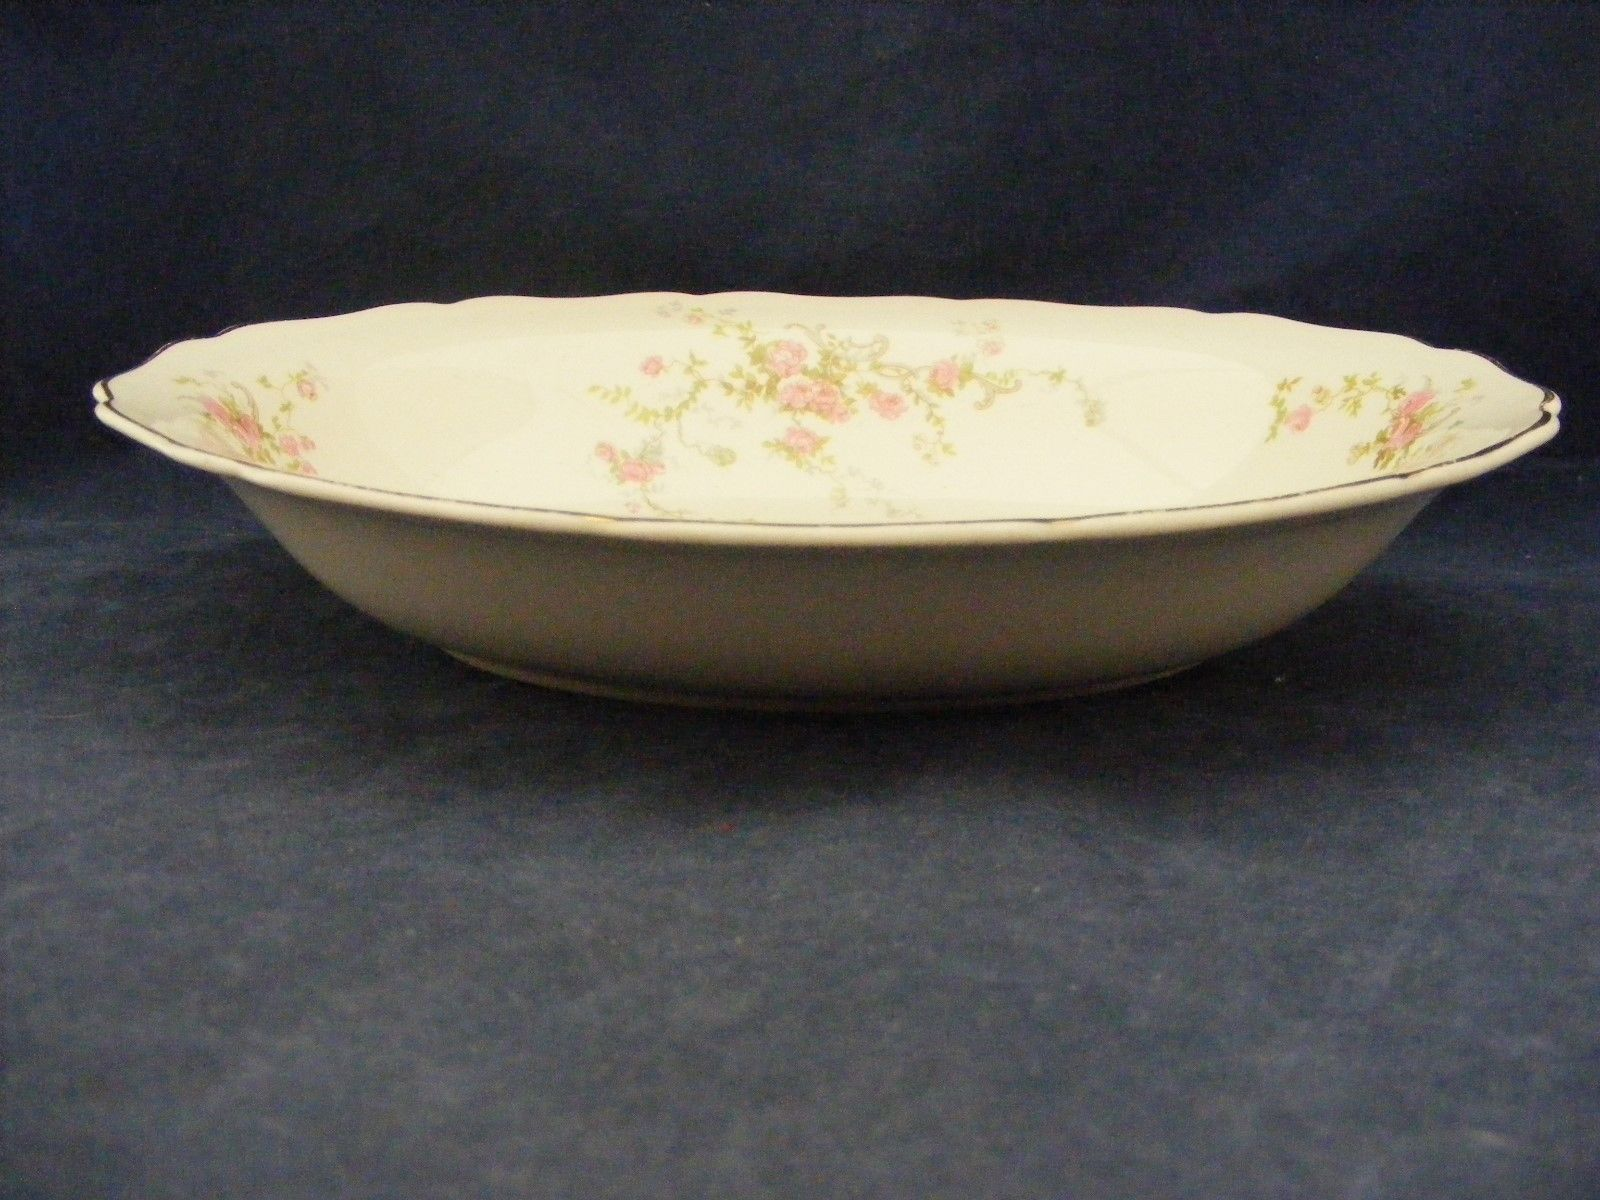 "Canonsburg Pottery Keystone Pink Roses Gold Trim 9.25"" x 7"" Oval Serving Bowl"